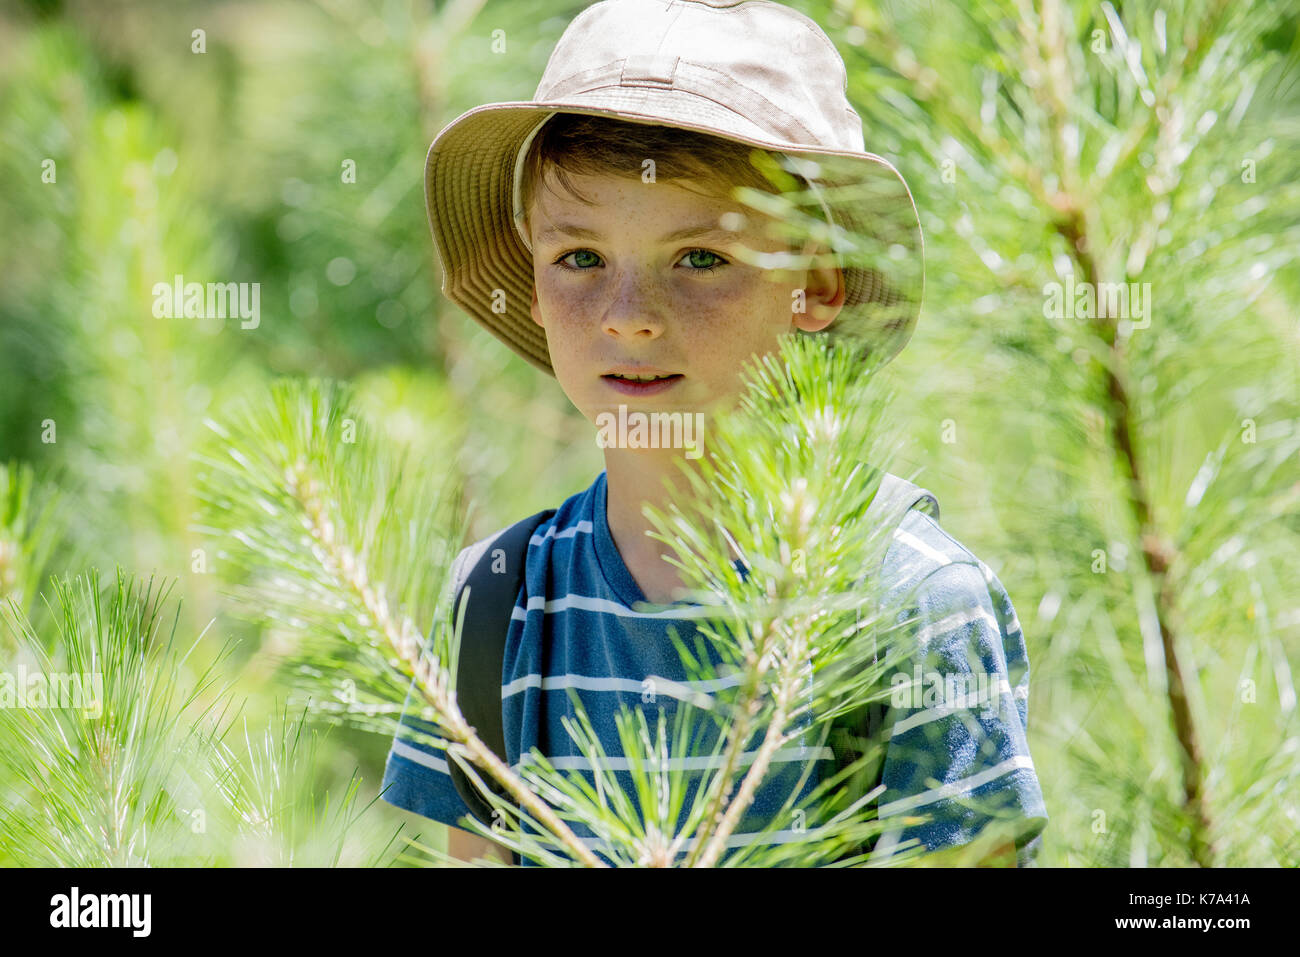 Boy in woods, portrait - Stock Image